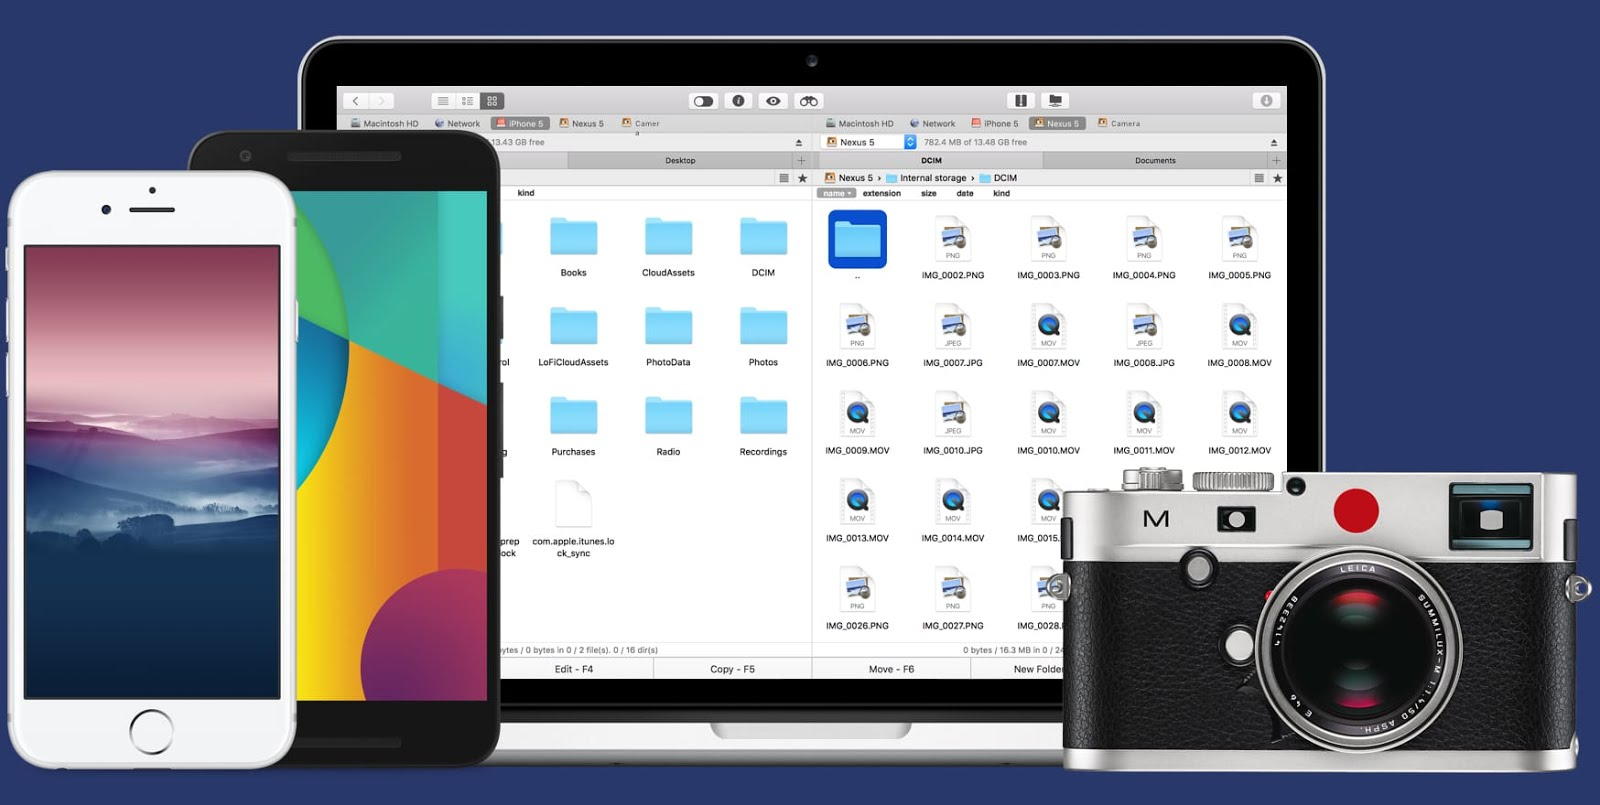 Commander One: The Best File Manager for Mac - Tech Quark